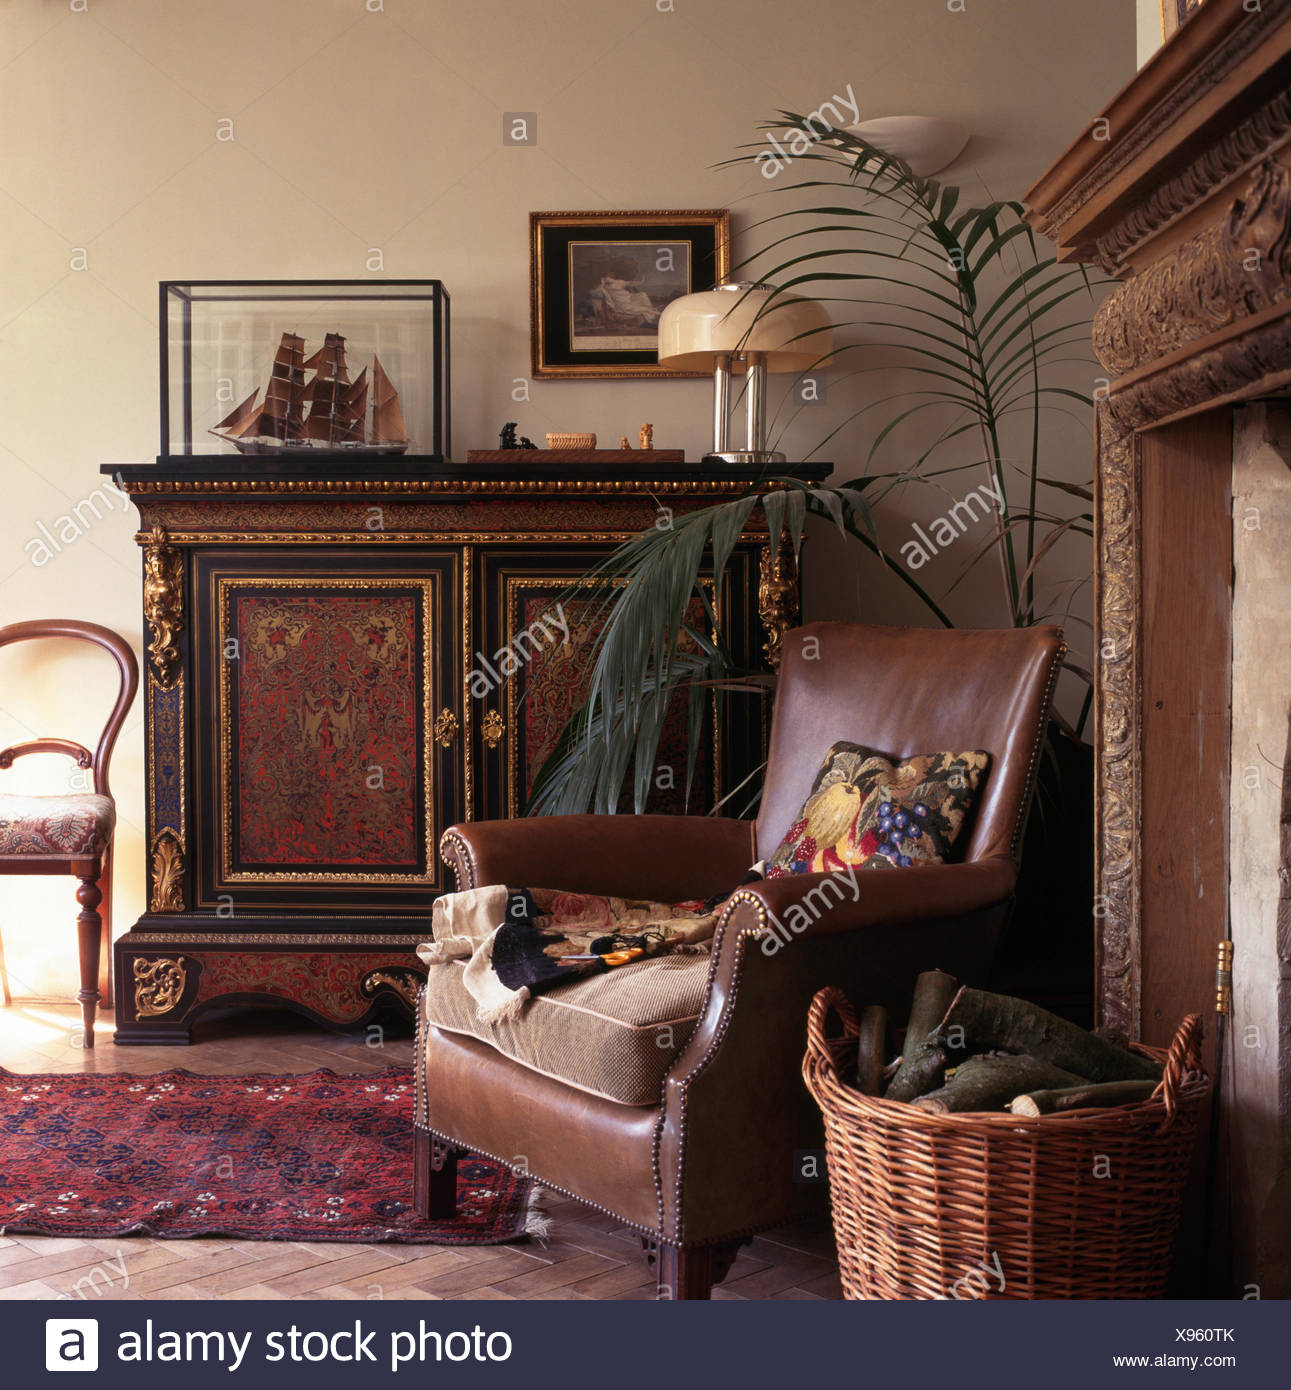 Charming Brown Leather Chair And Ornate Antique Cupboard In Old Fashioned Living Room